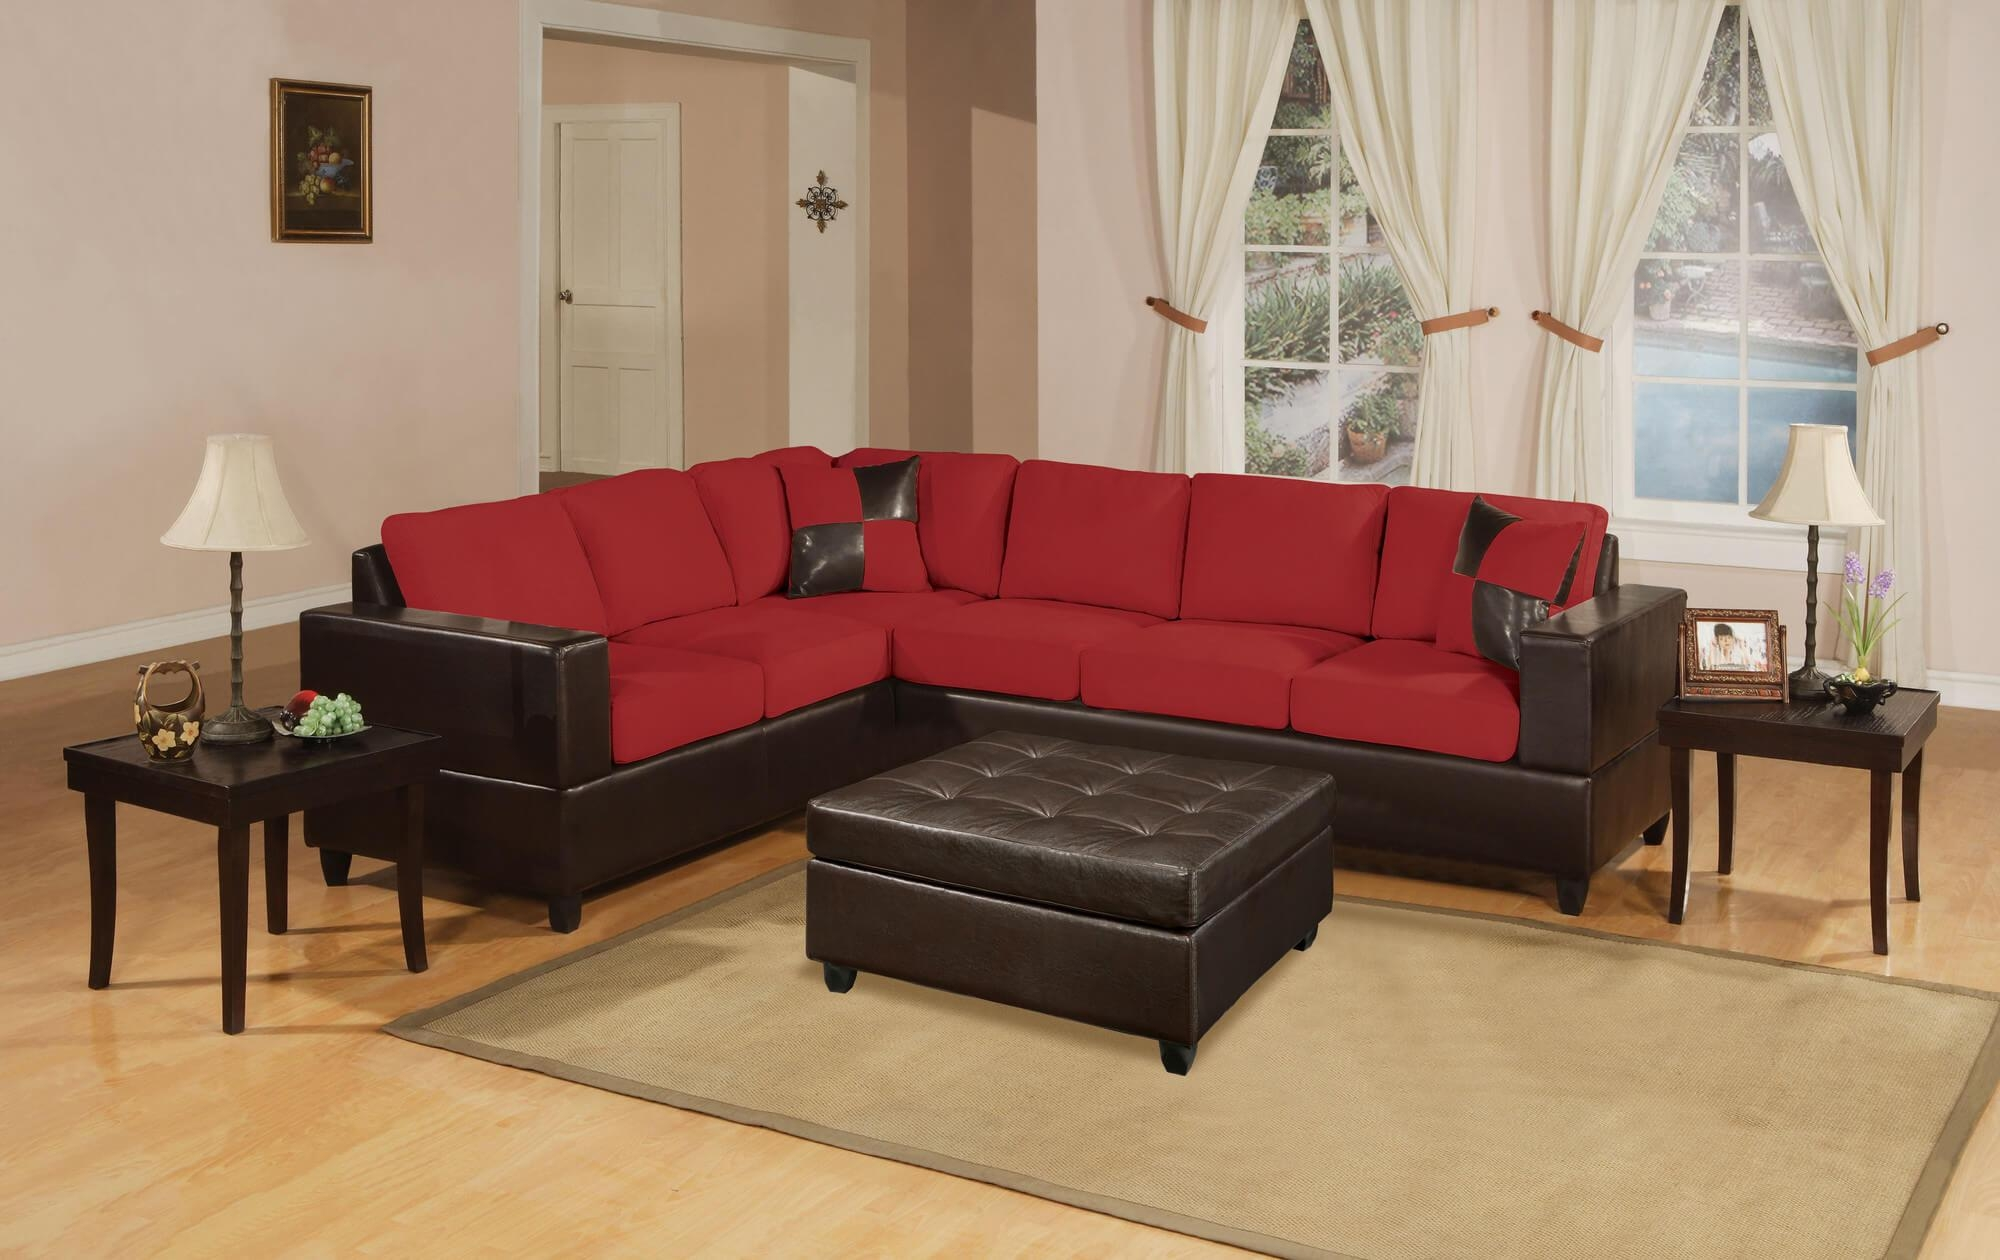 Furniture: Comfortable Deep Seat Sectional For Your Living Room Intended For Deep Seat Leather Sectional (Image 4 of 15)